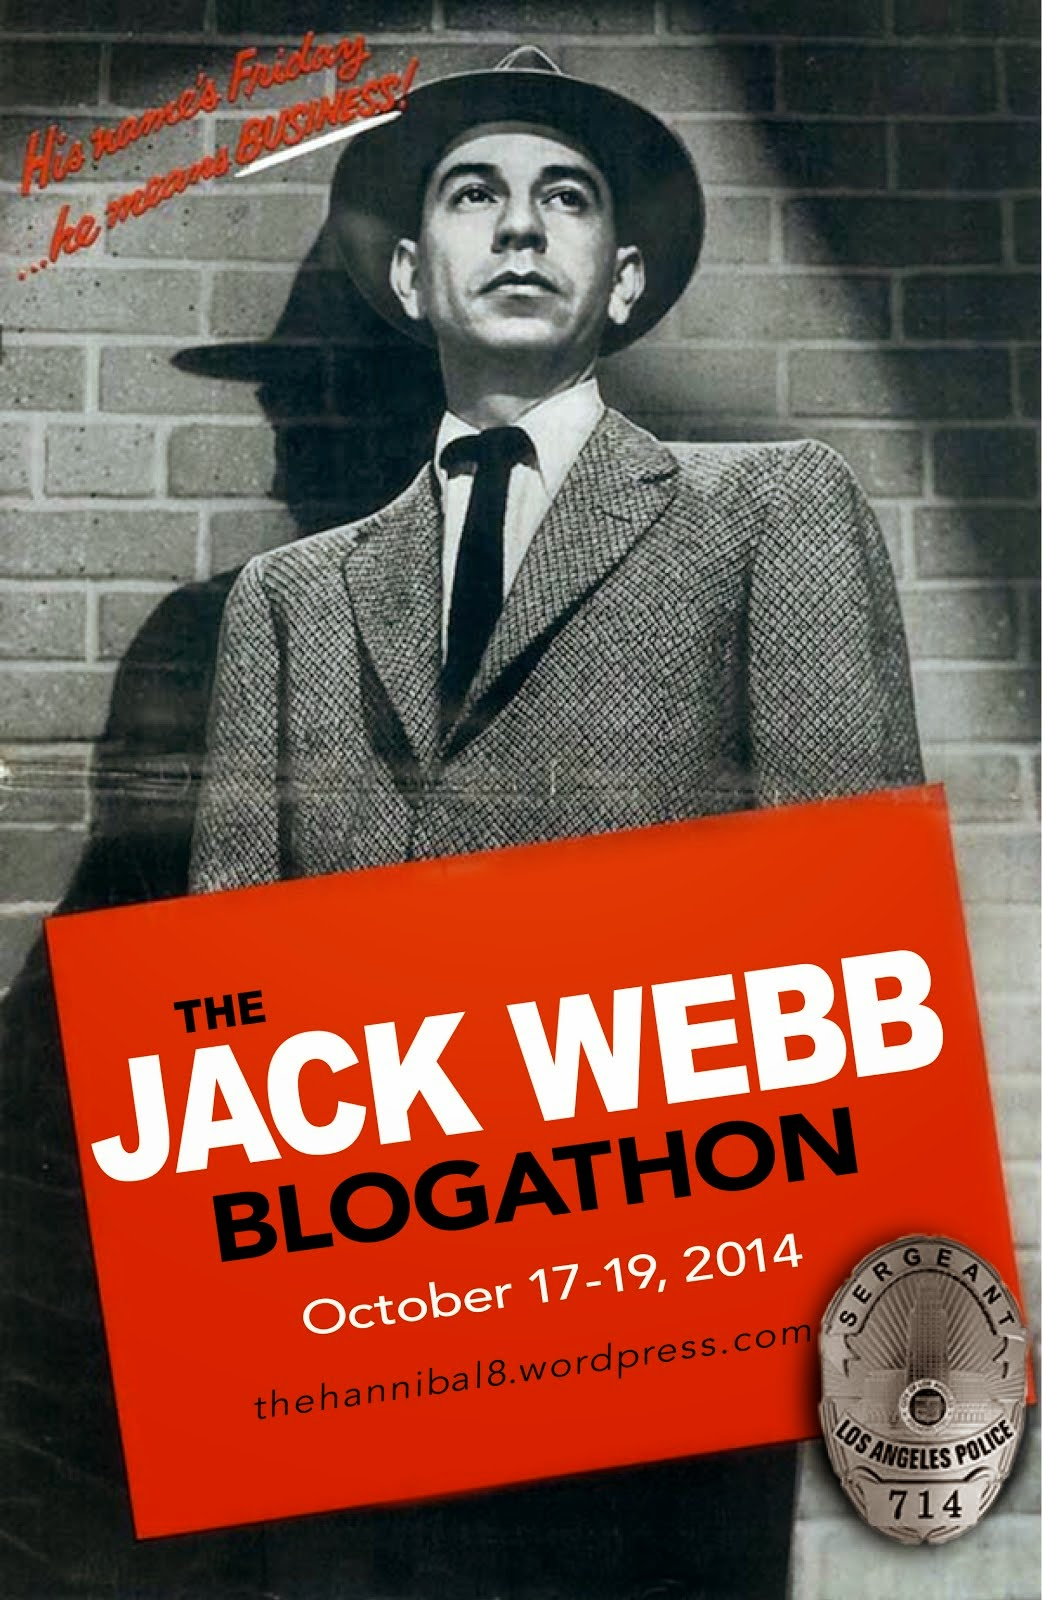 THIS IS THE BLOGATHON...